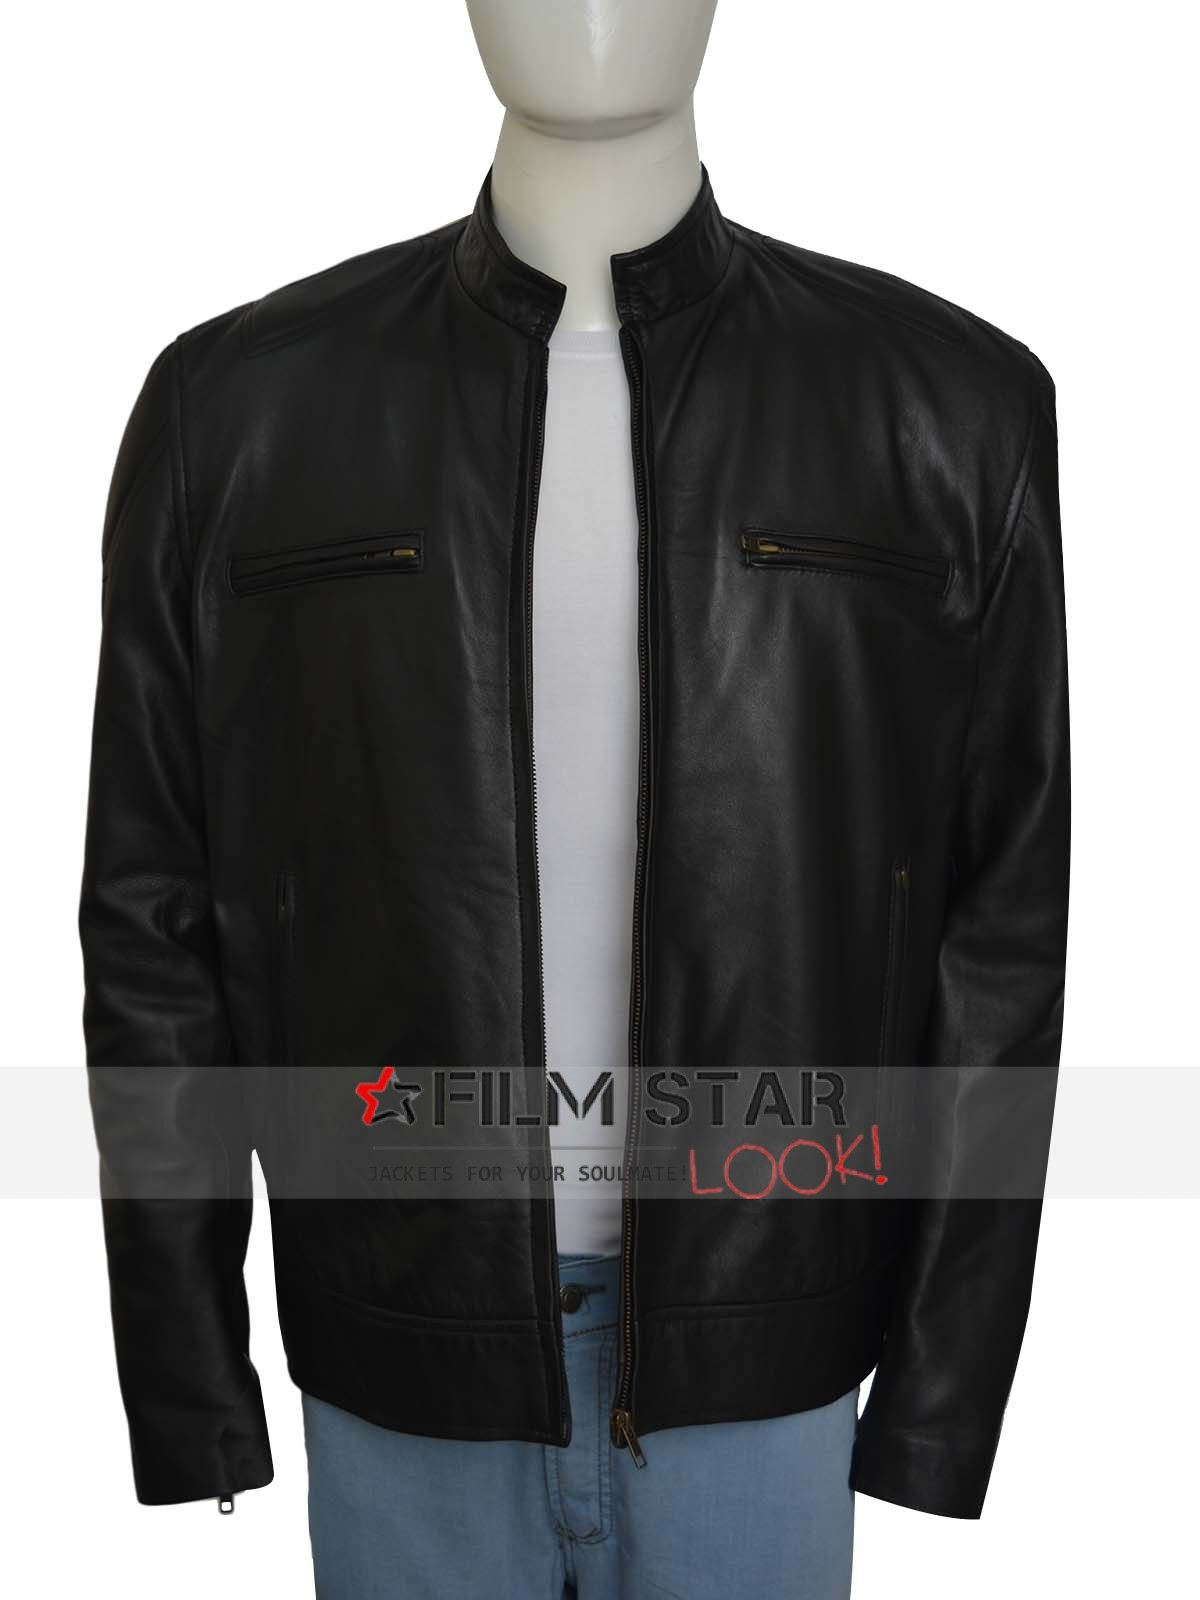 Leather jacket cost - Purchase Harleydavidson Skull Leather Jacket In Affordable Cost With Our Store